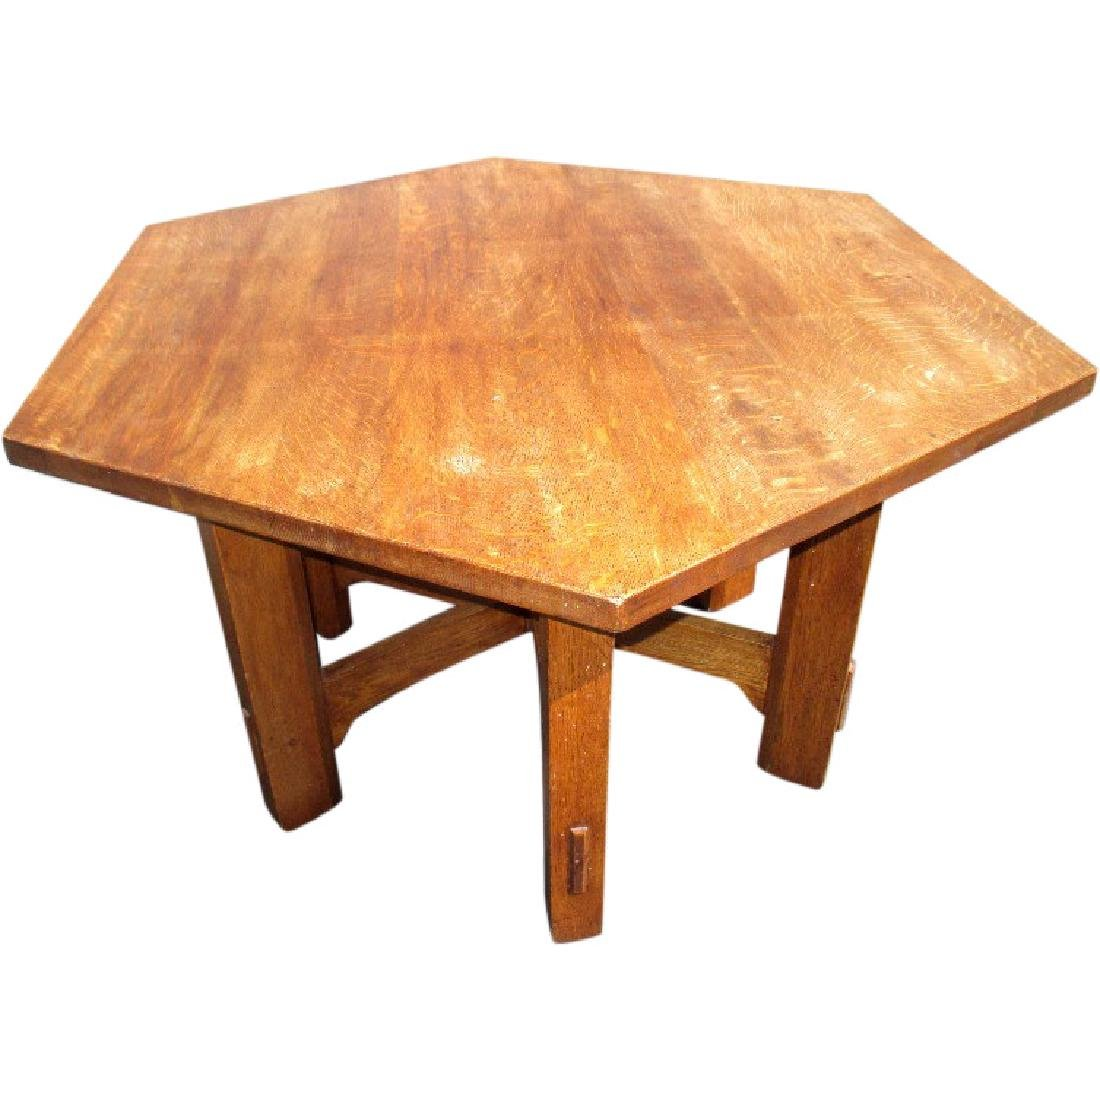 Original Gustav Stickley Hexagonal Library Table - #624